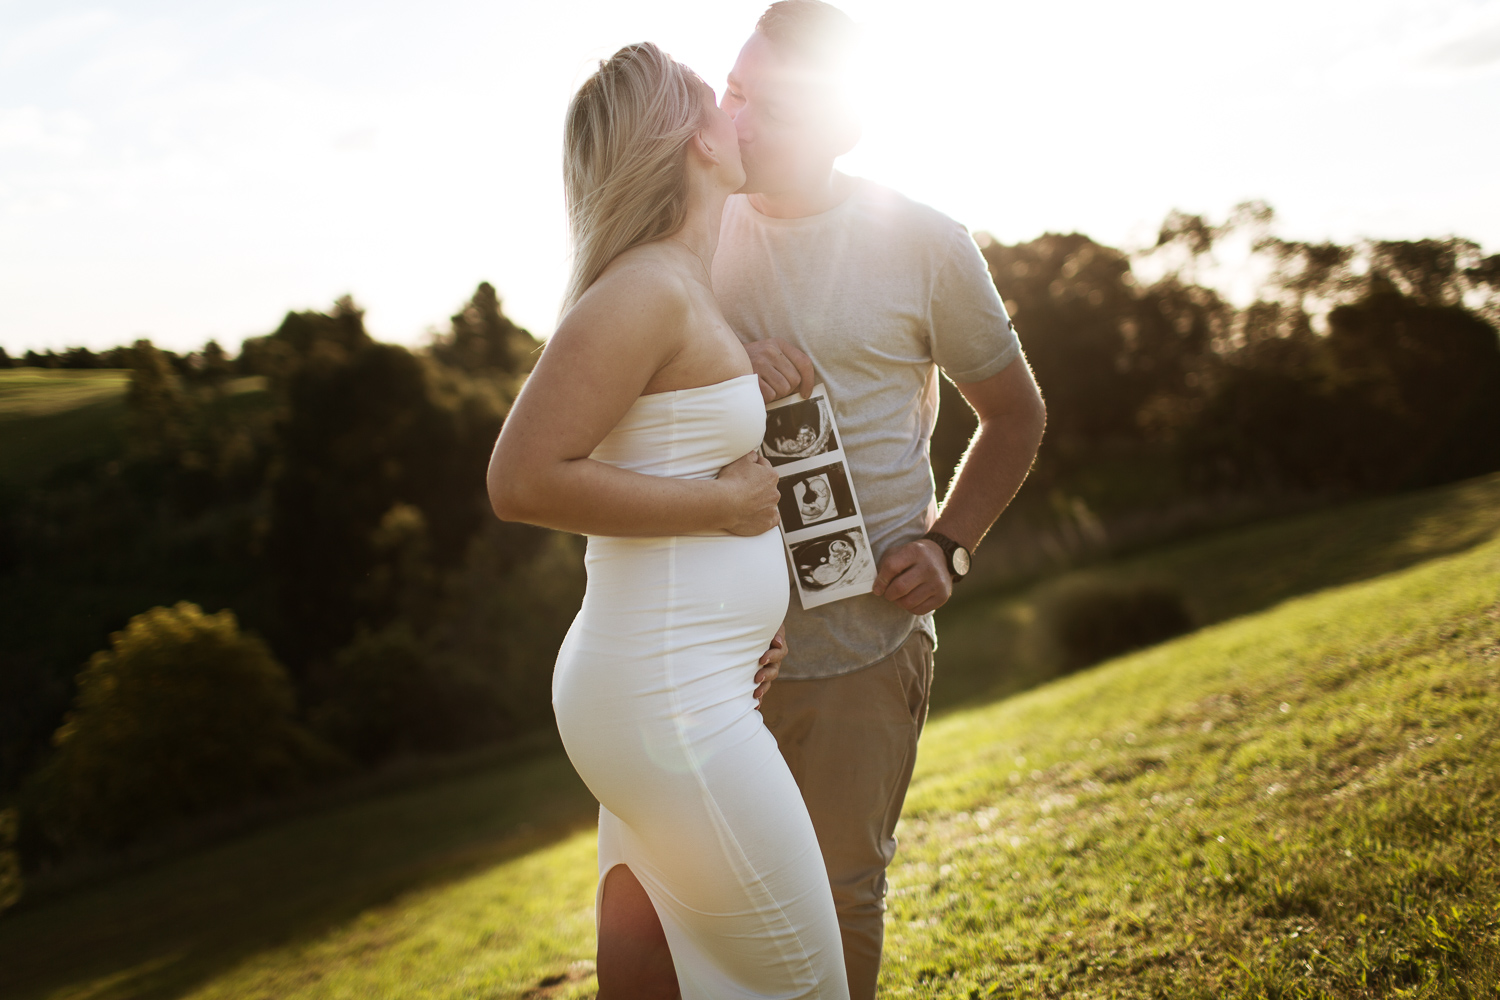 Celebrating their journey into parenthood with a pregnancy announcement photo shoot during golden hour.